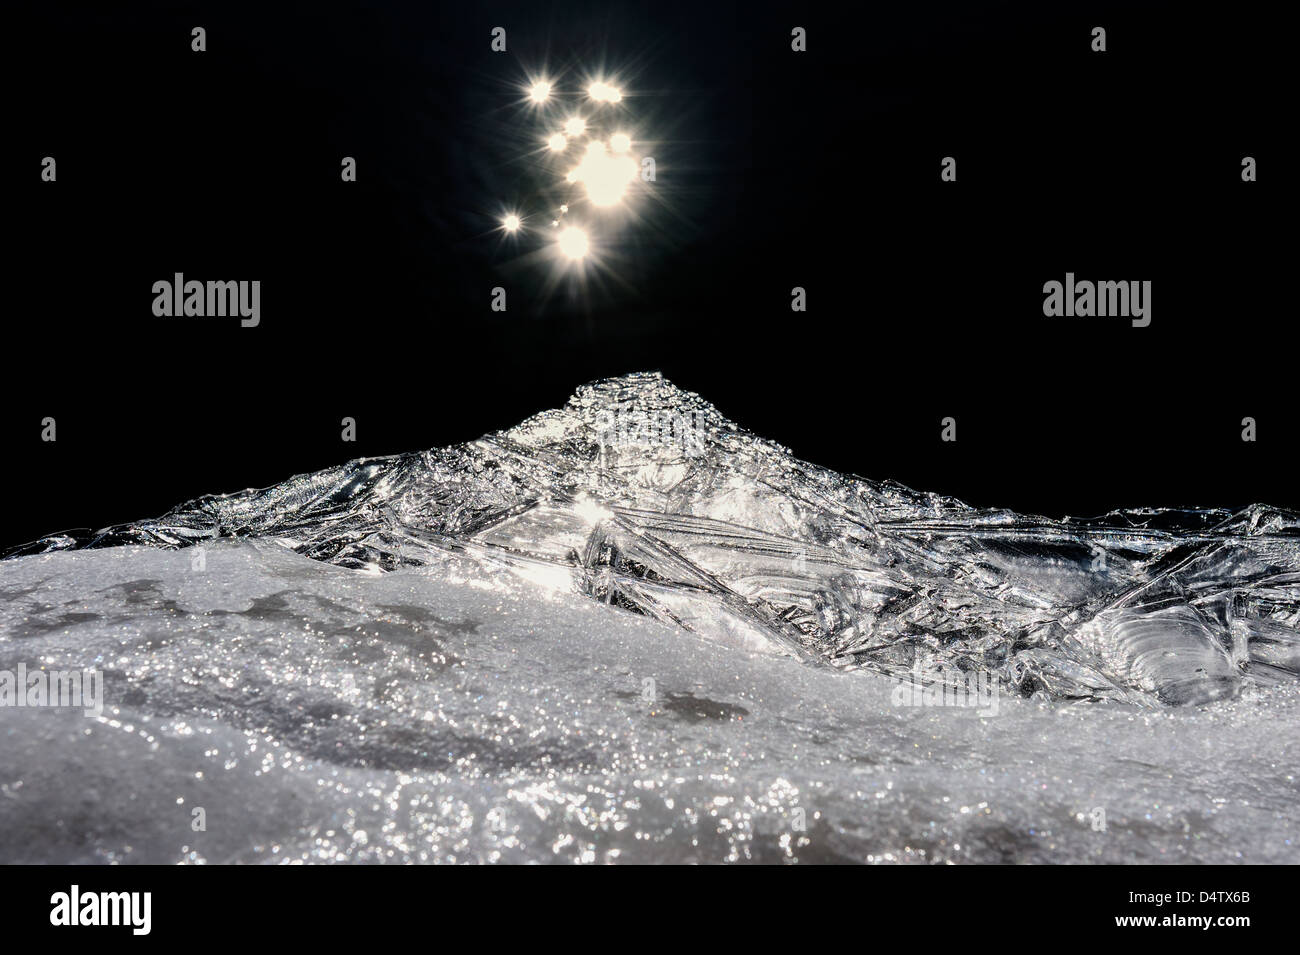 Bright stars reflected in river, Göta Älv, Sweden, Europe - Stock Image